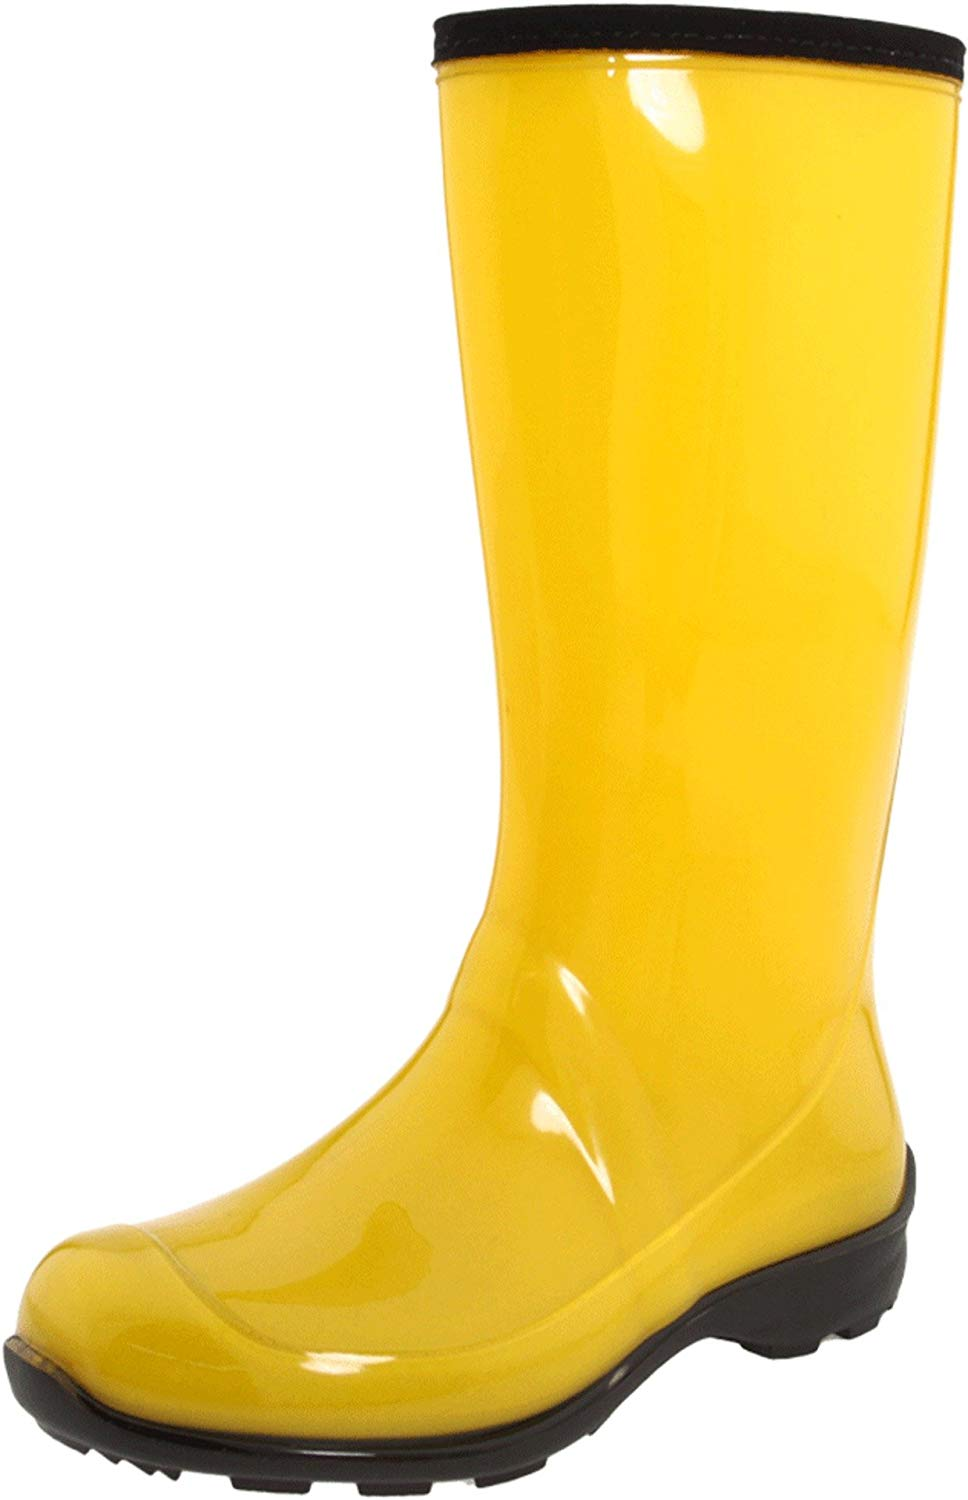 original boots for. Boot clipart yellow boot